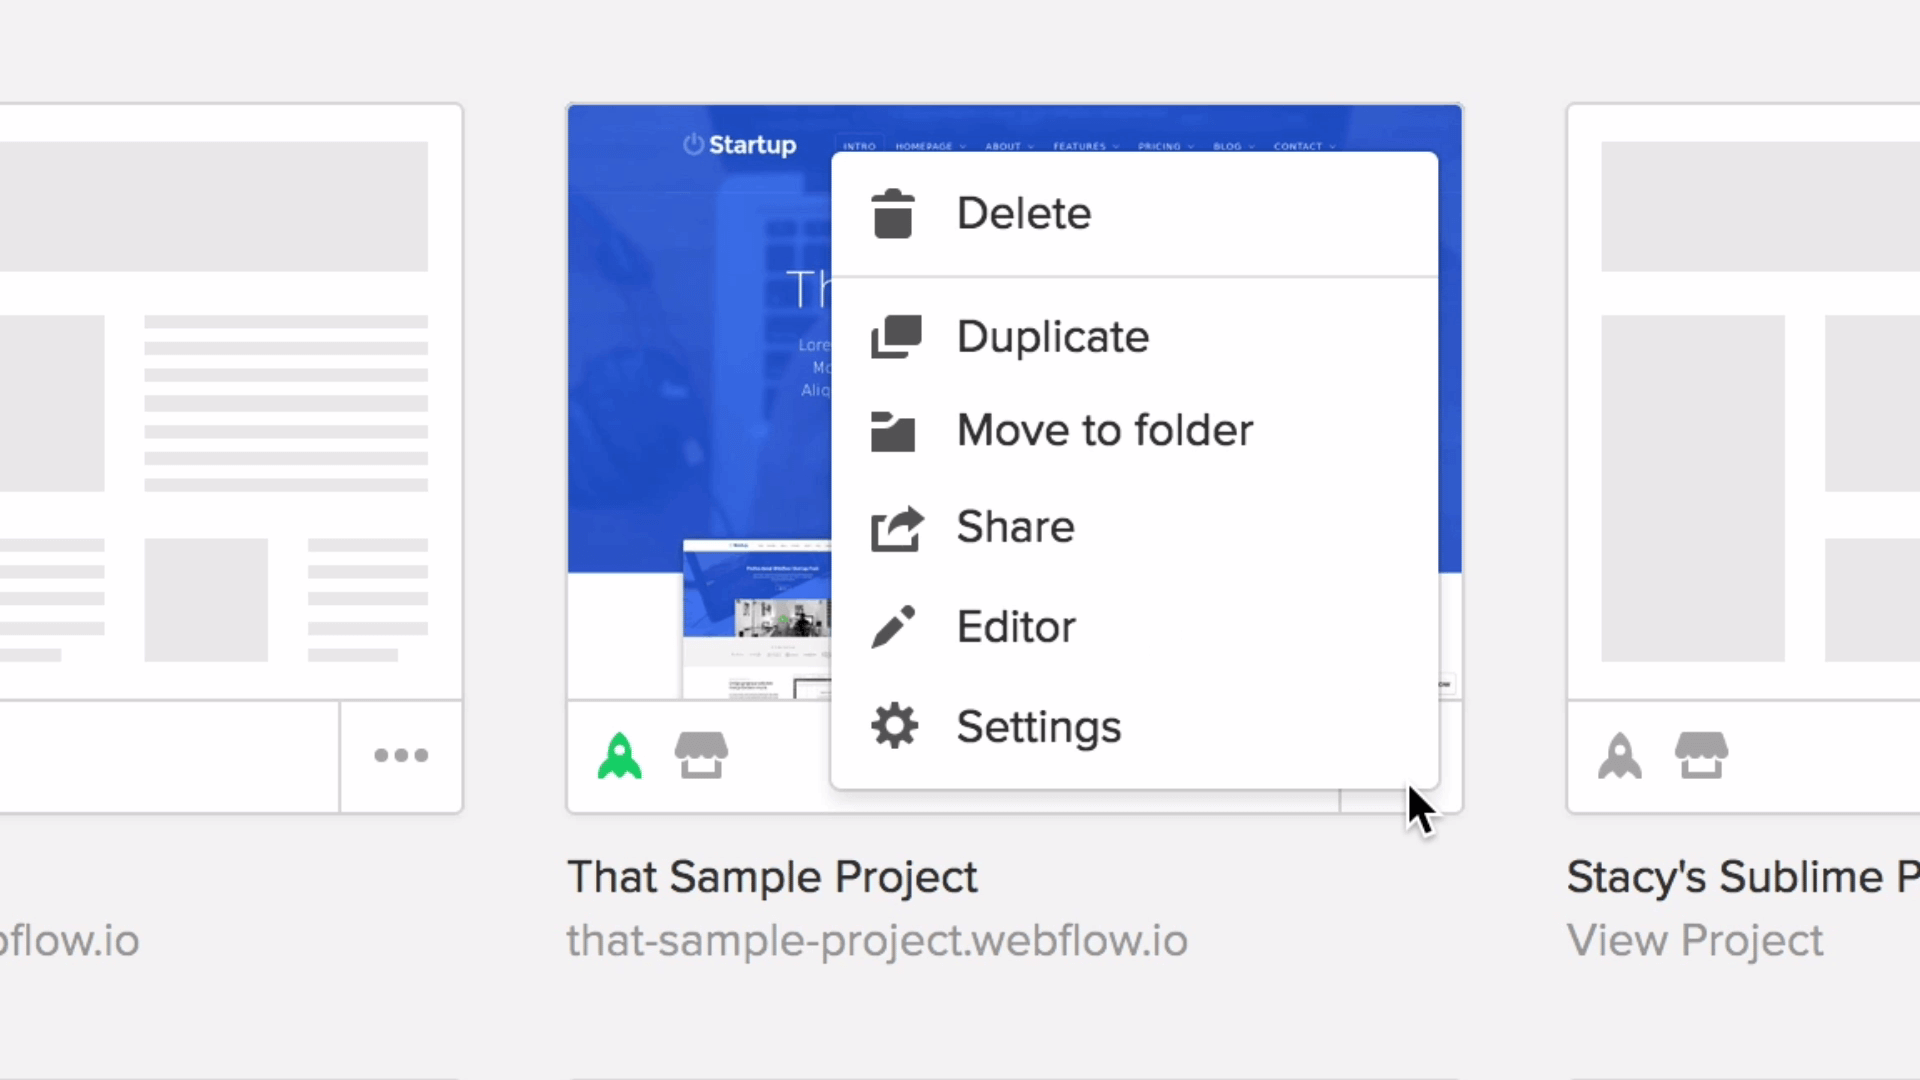 The project menu allows you to quickly manage your project.